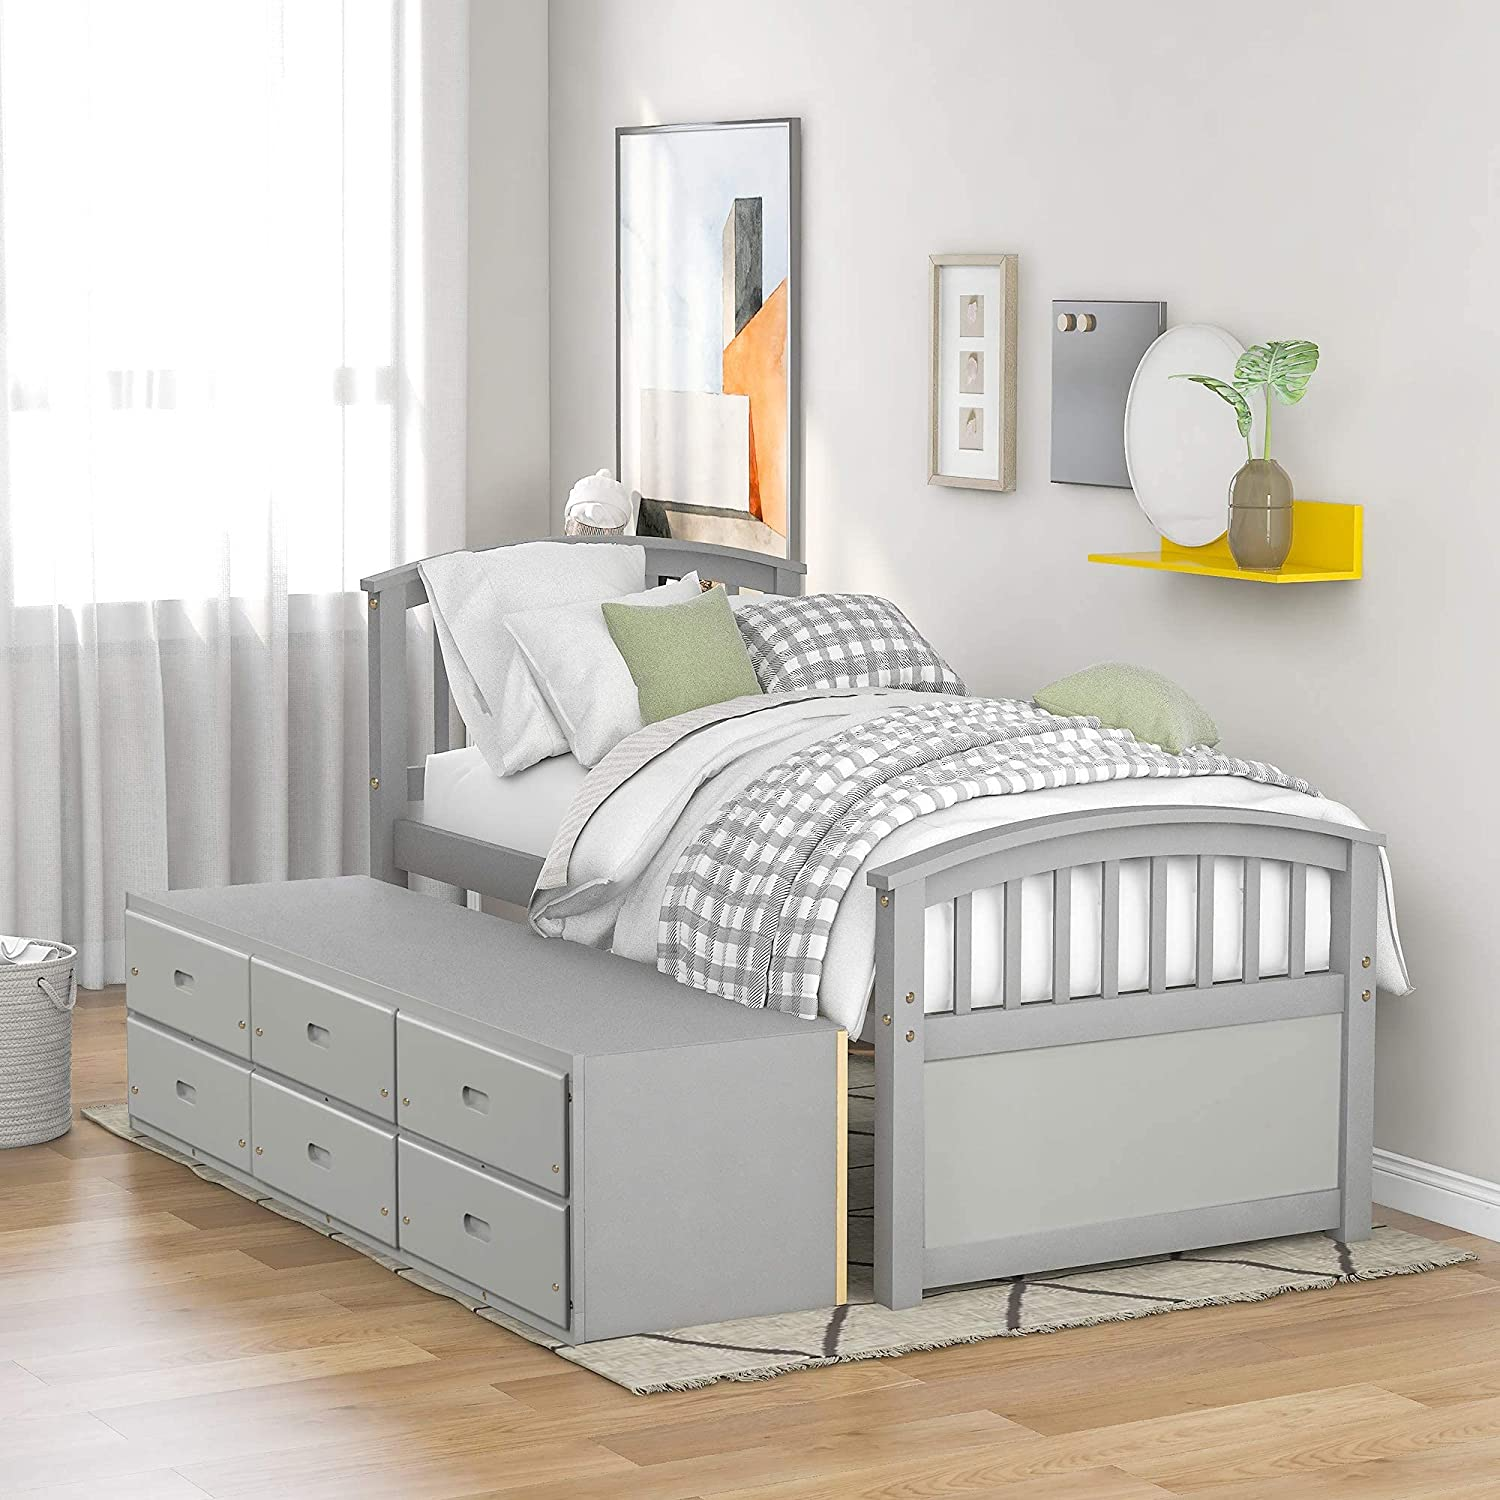 BRLUCKY Safety and trust Support Twin Bed Frame Don't miss the campaign with Wood C Drawers Storage Solid